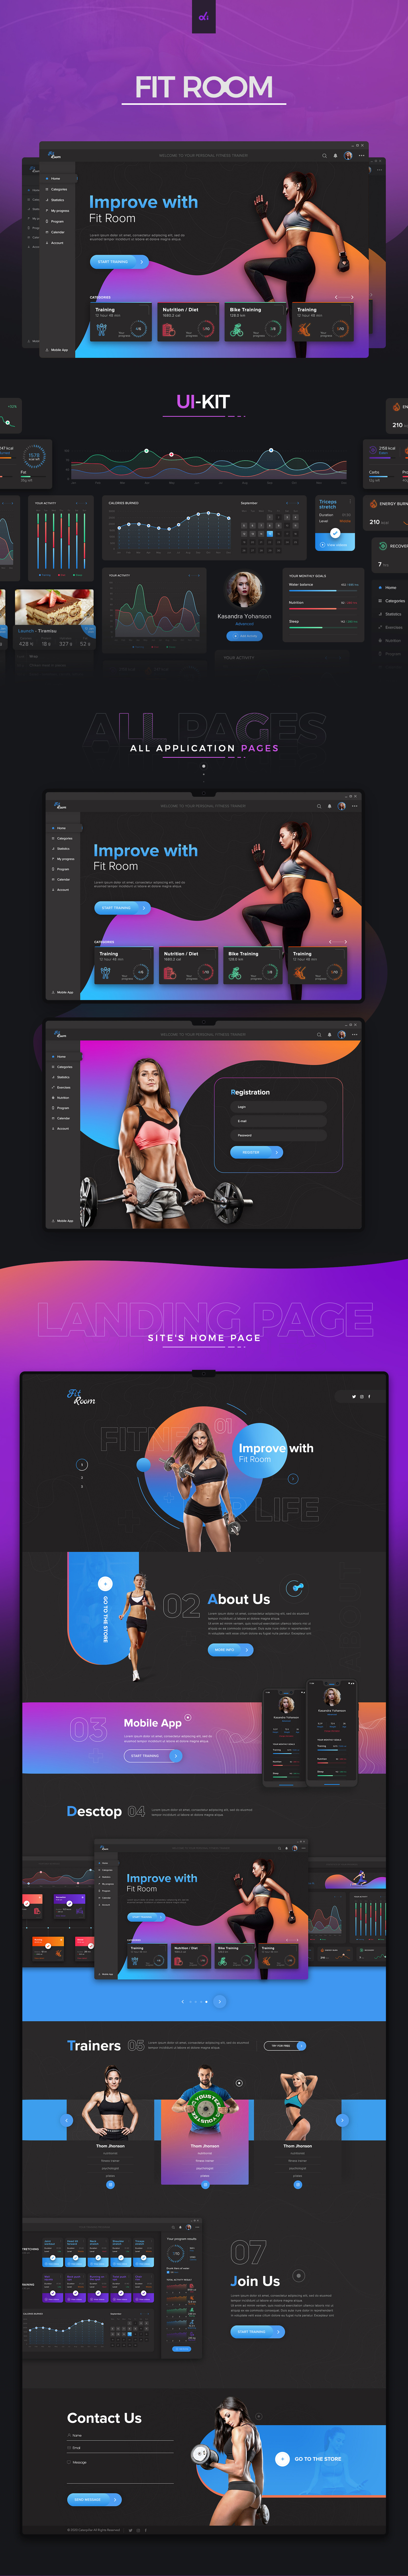 Fitroom UI kit